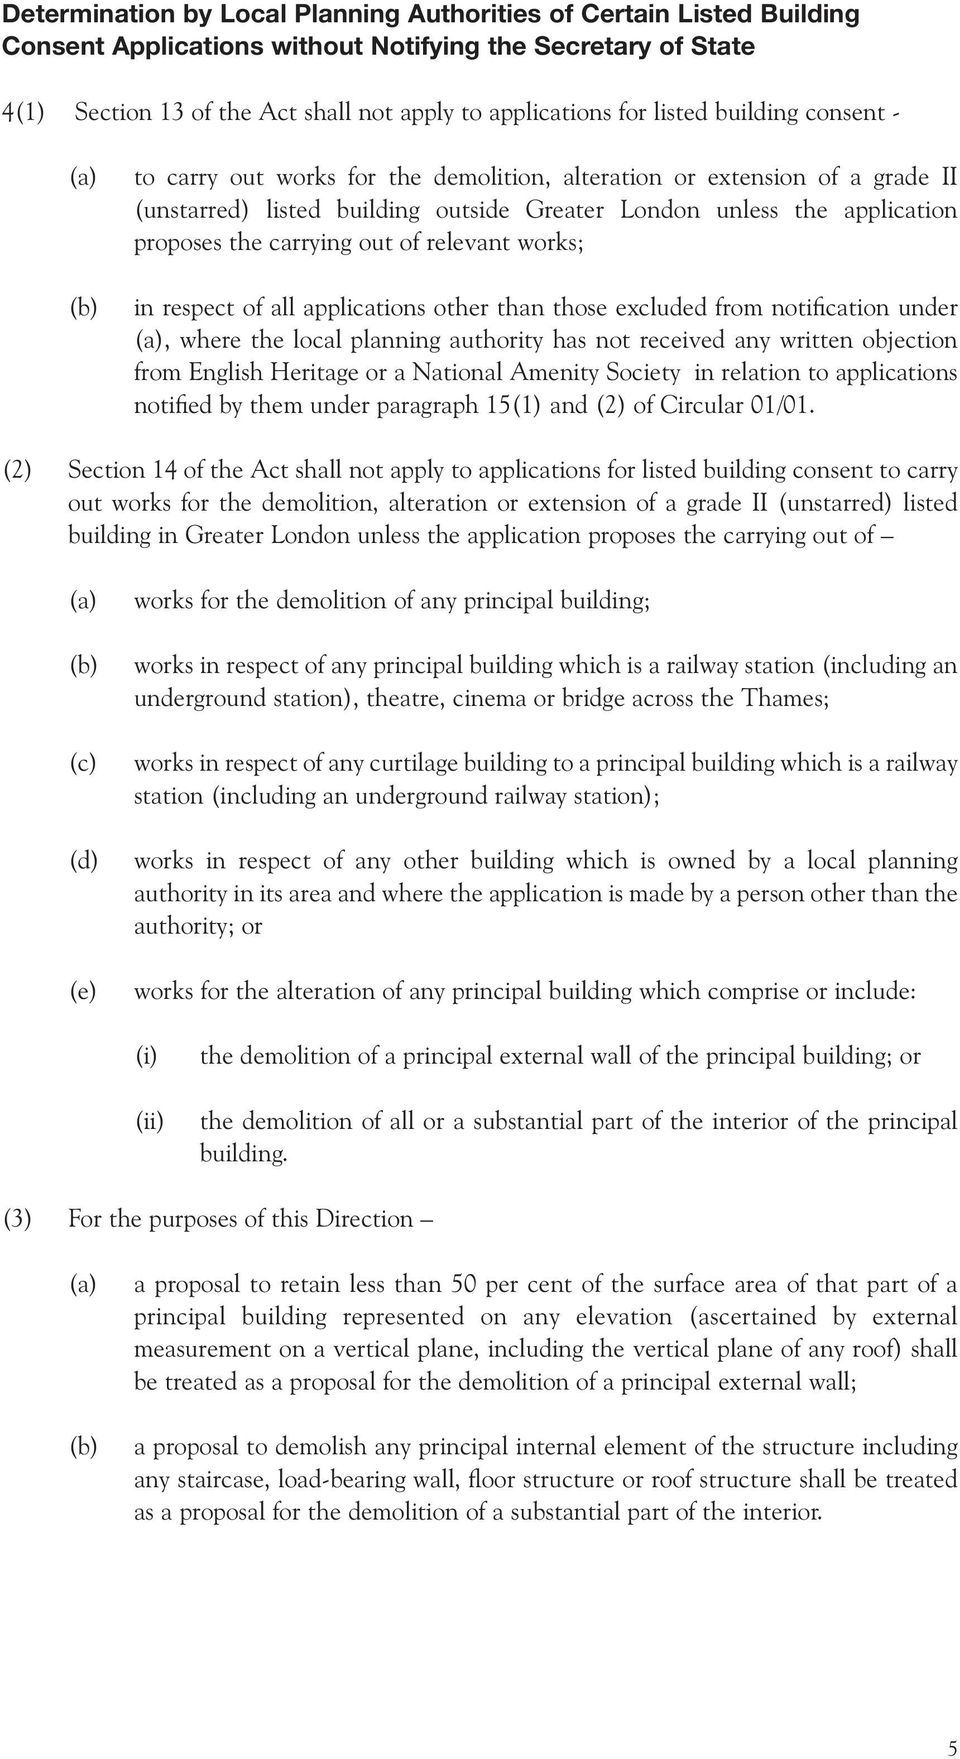 carrying out of relevant works; in respect of all applications other than those excluded from notification under (a), where the local planning authority has not received any written objection from